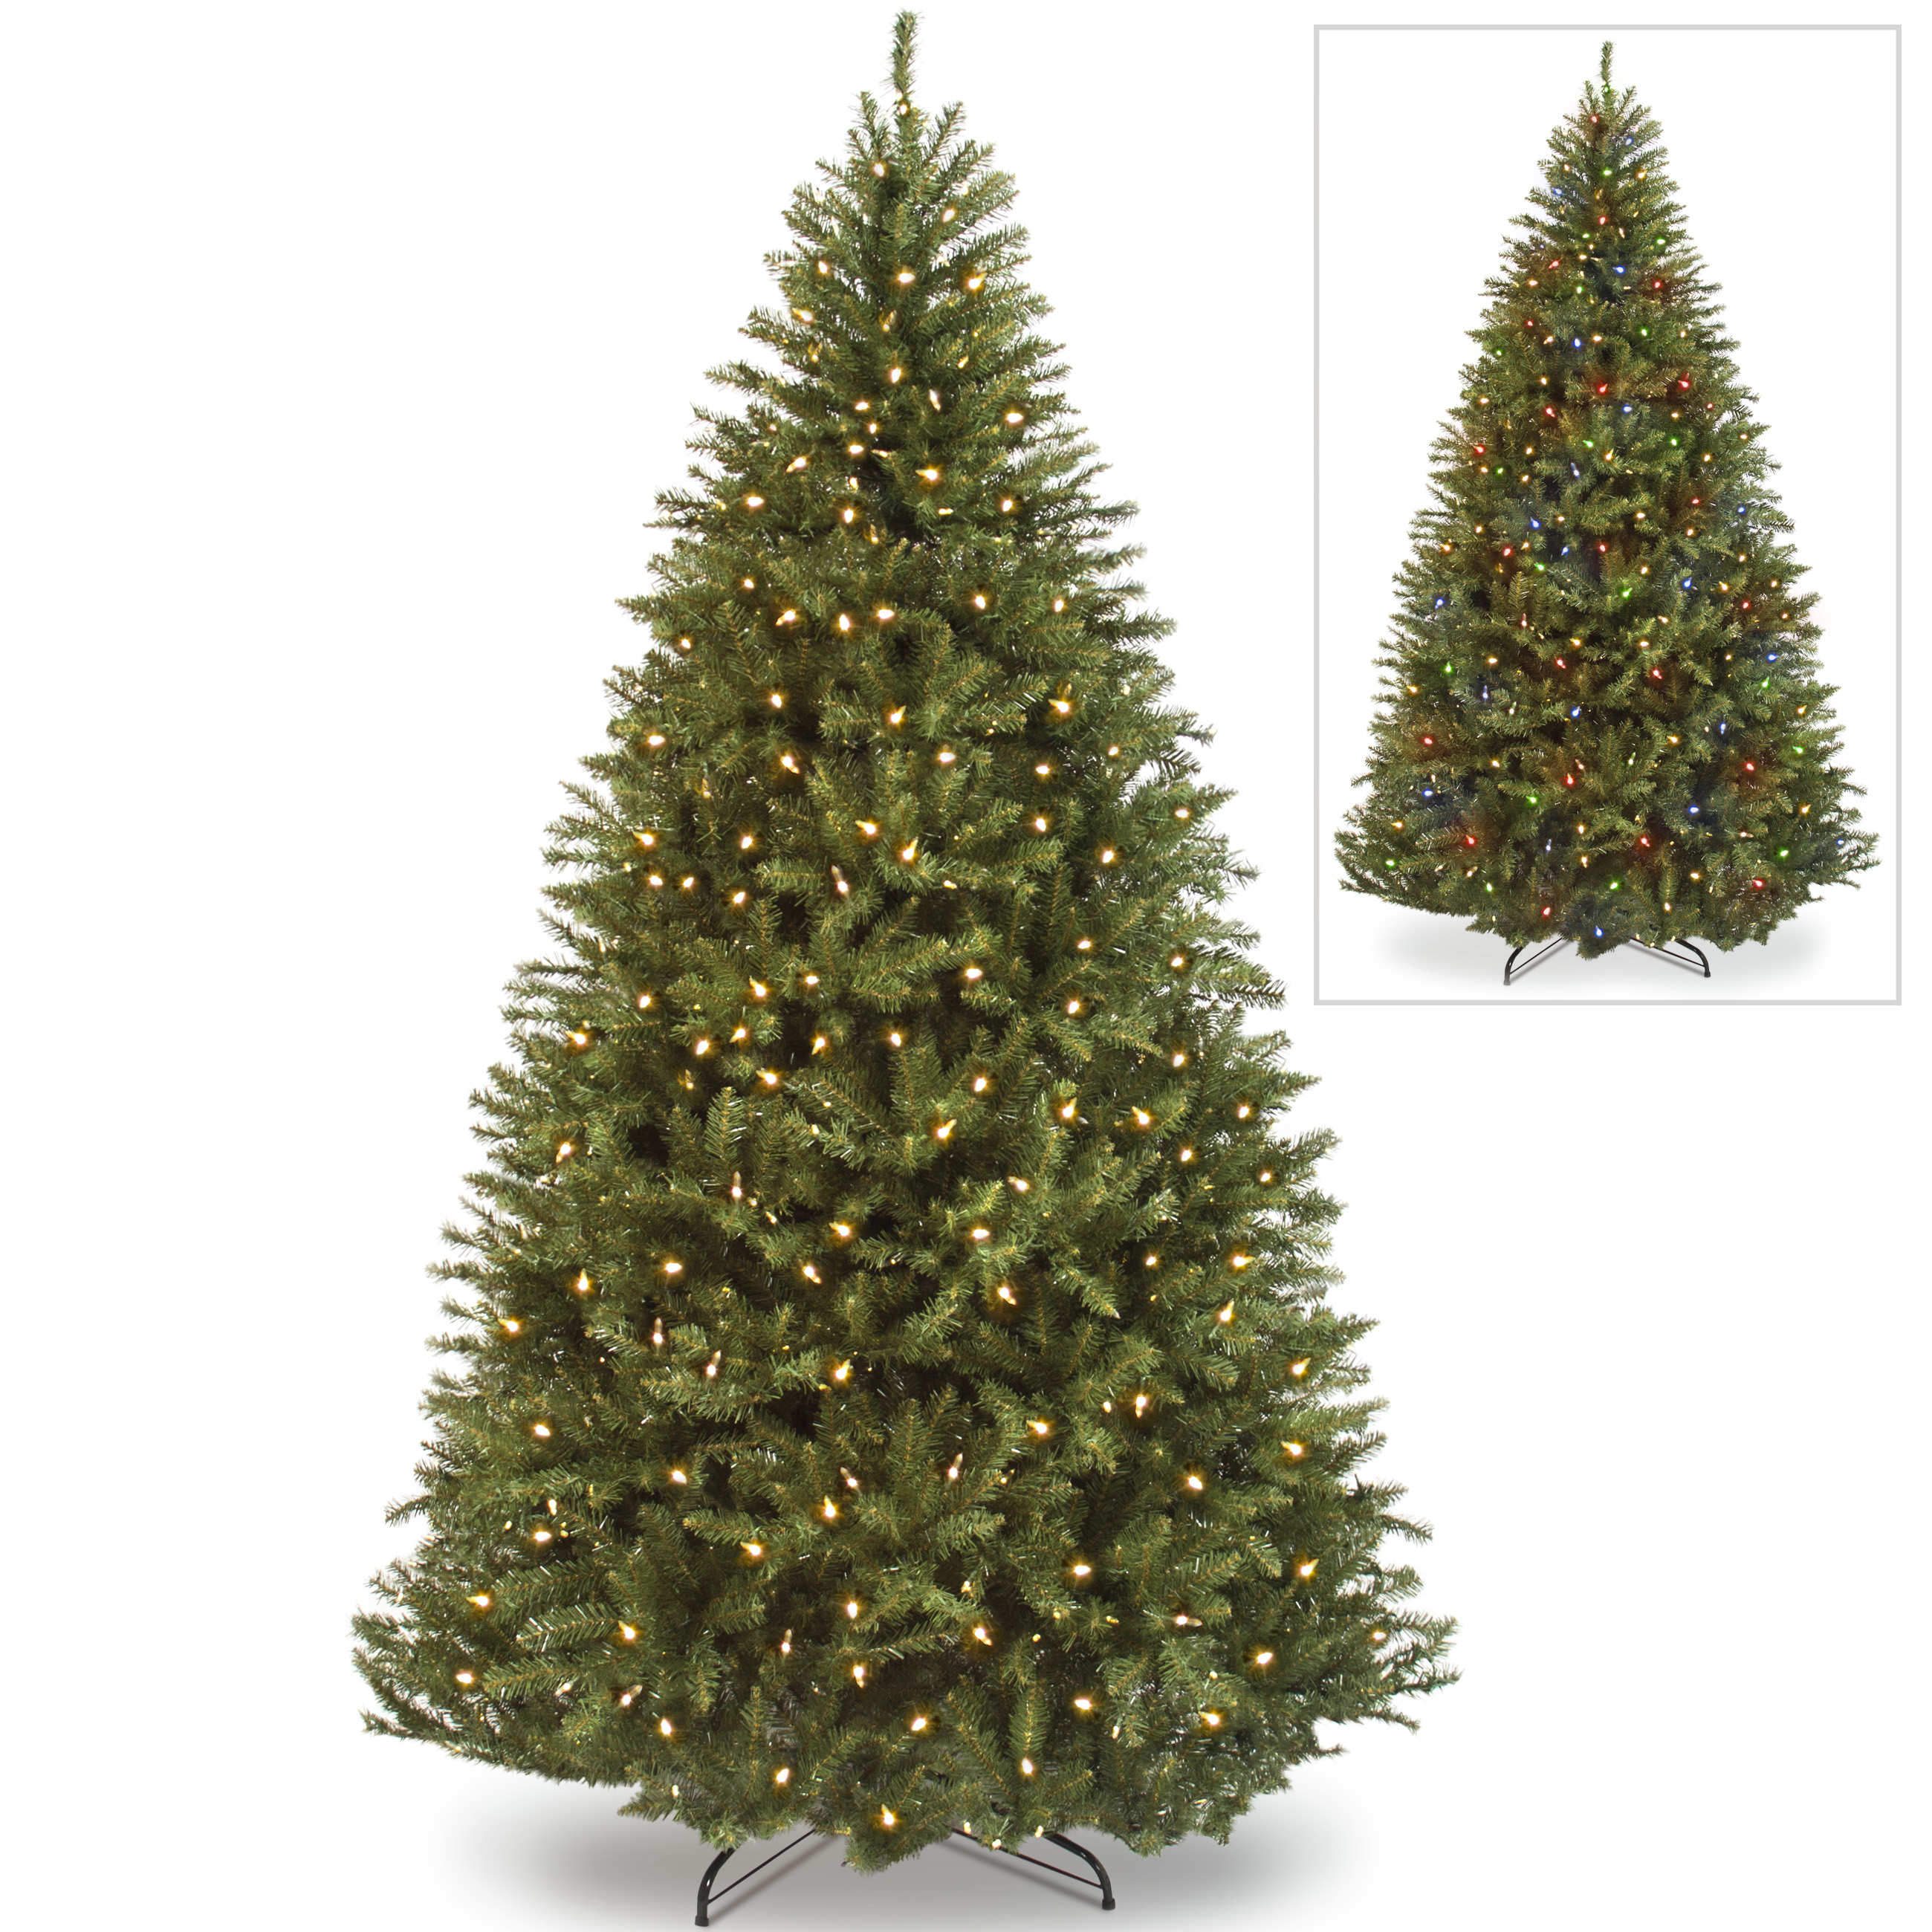 Best Choice Products 7 5ft Pre Lit Fir Hinged Artificial Christmas Tree W 700 Dual Colored Led Lights Adjule White And Multicolored